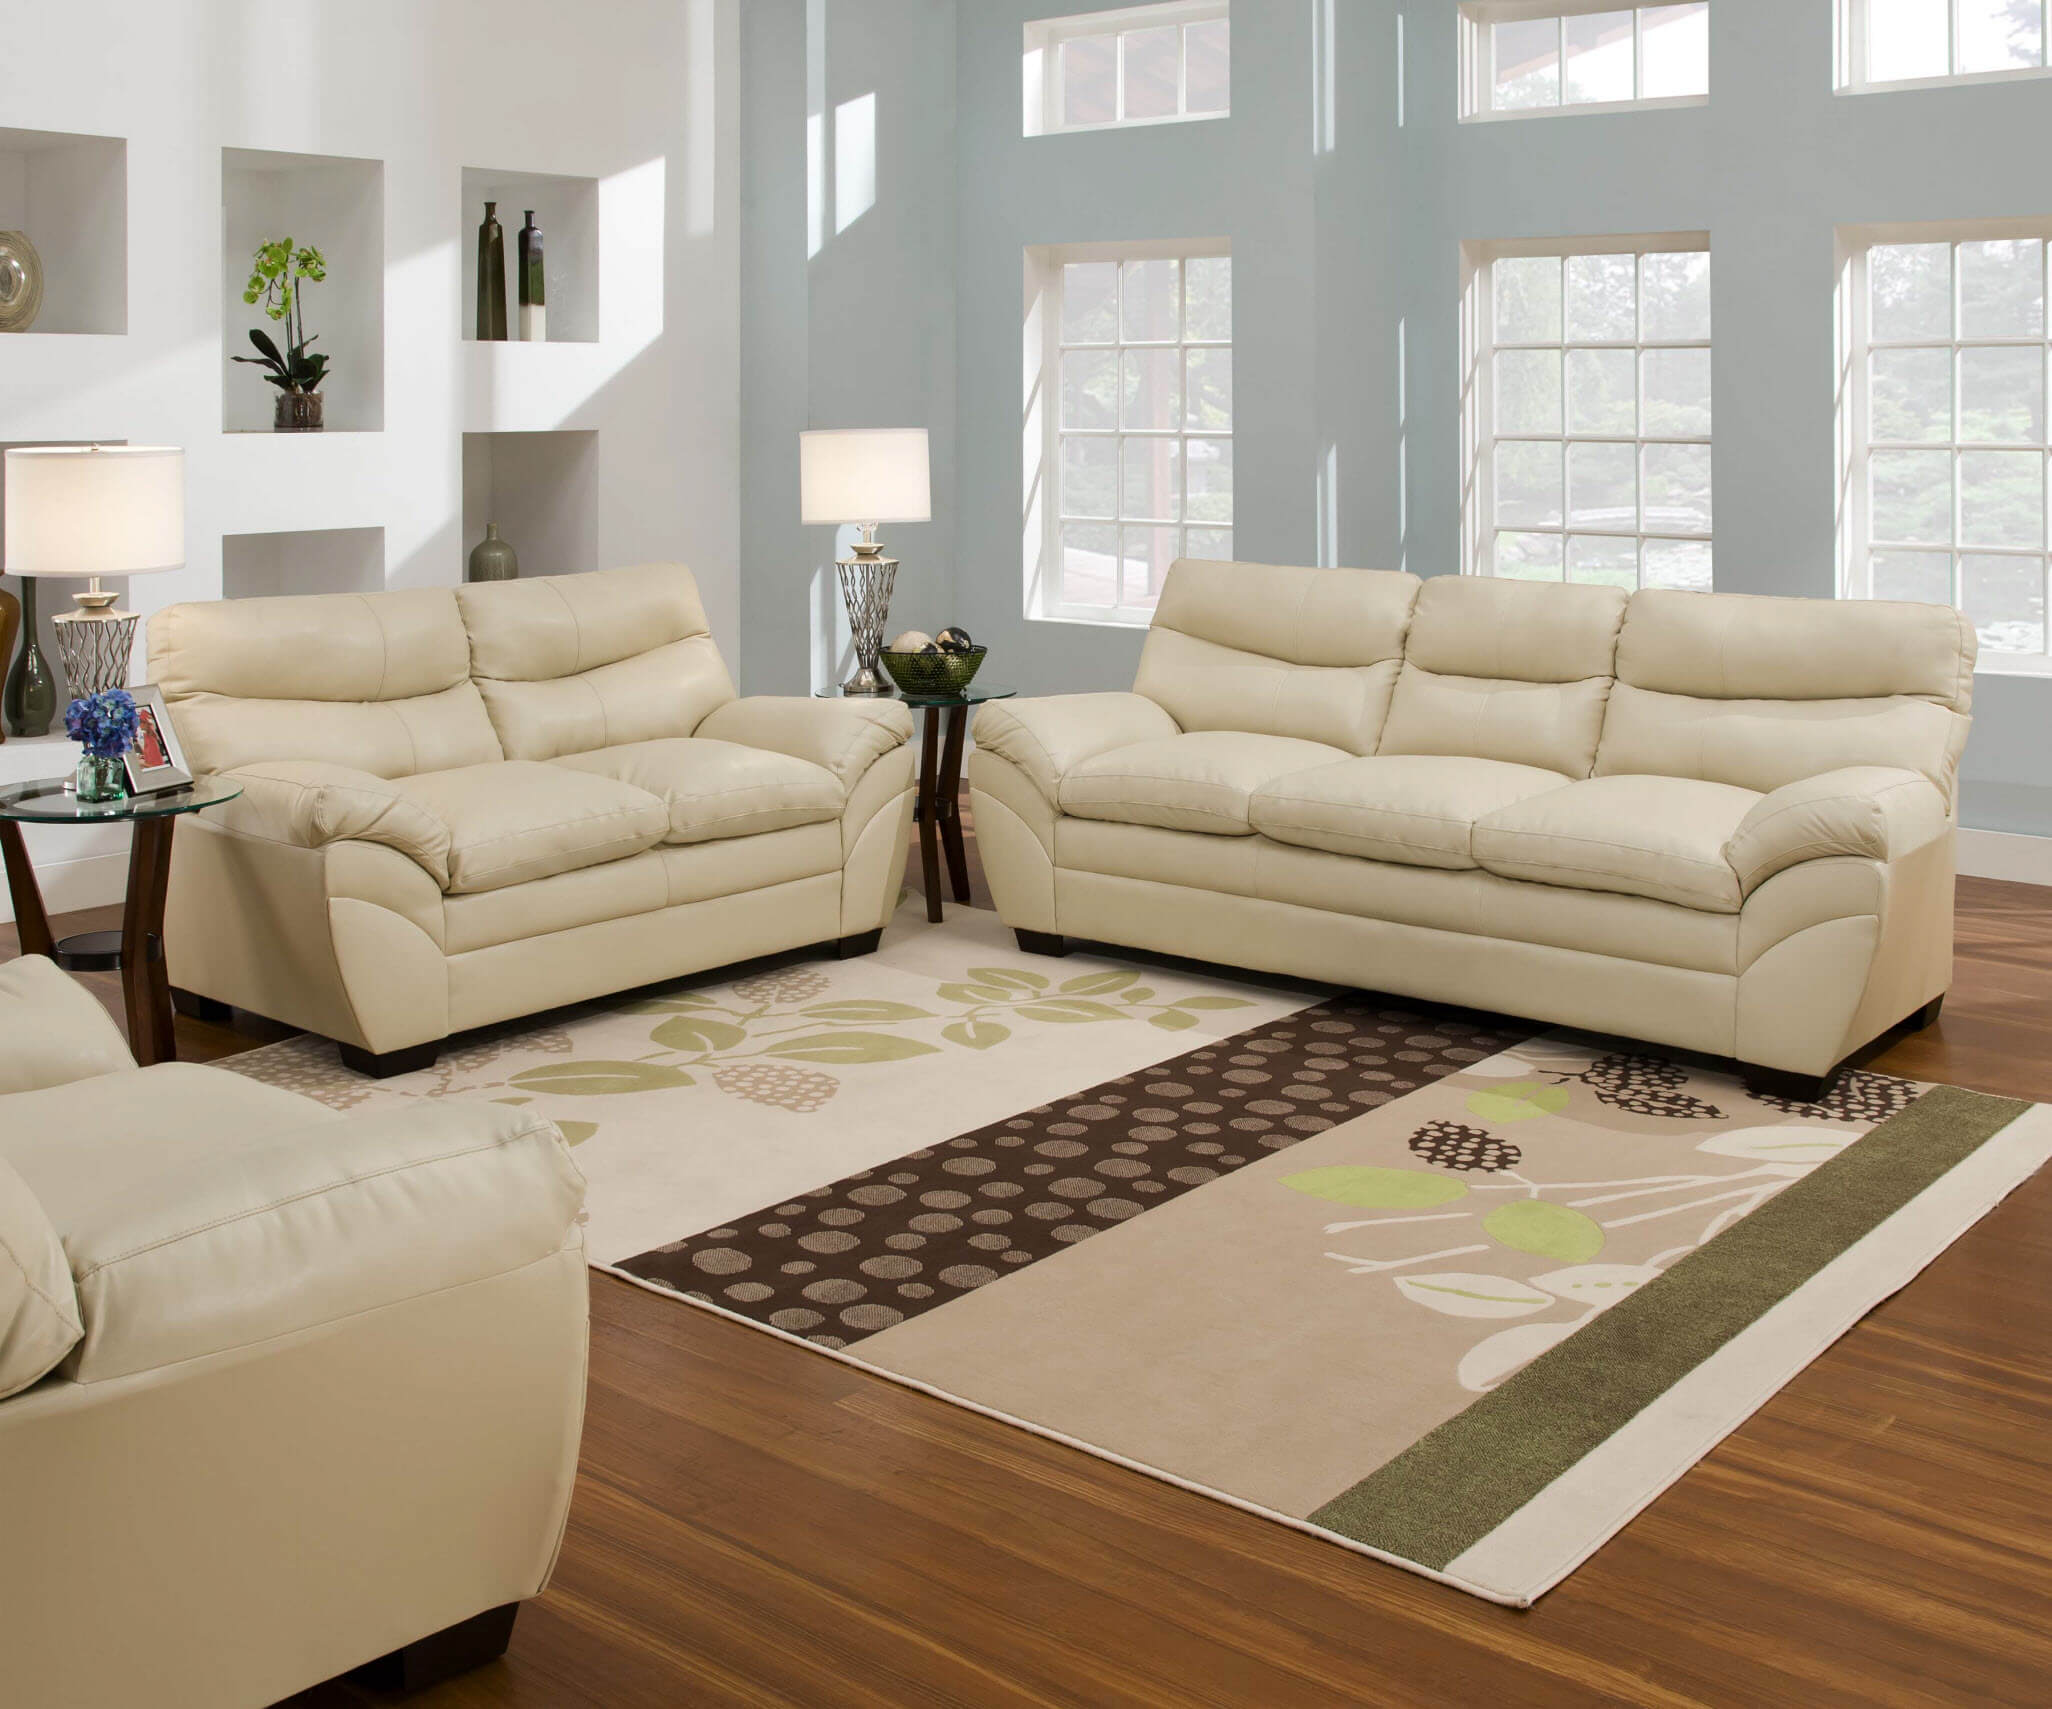 Living Room Sofas Sets 9515 Simmons Soho Natural Sofa And Loveseat Discontinued